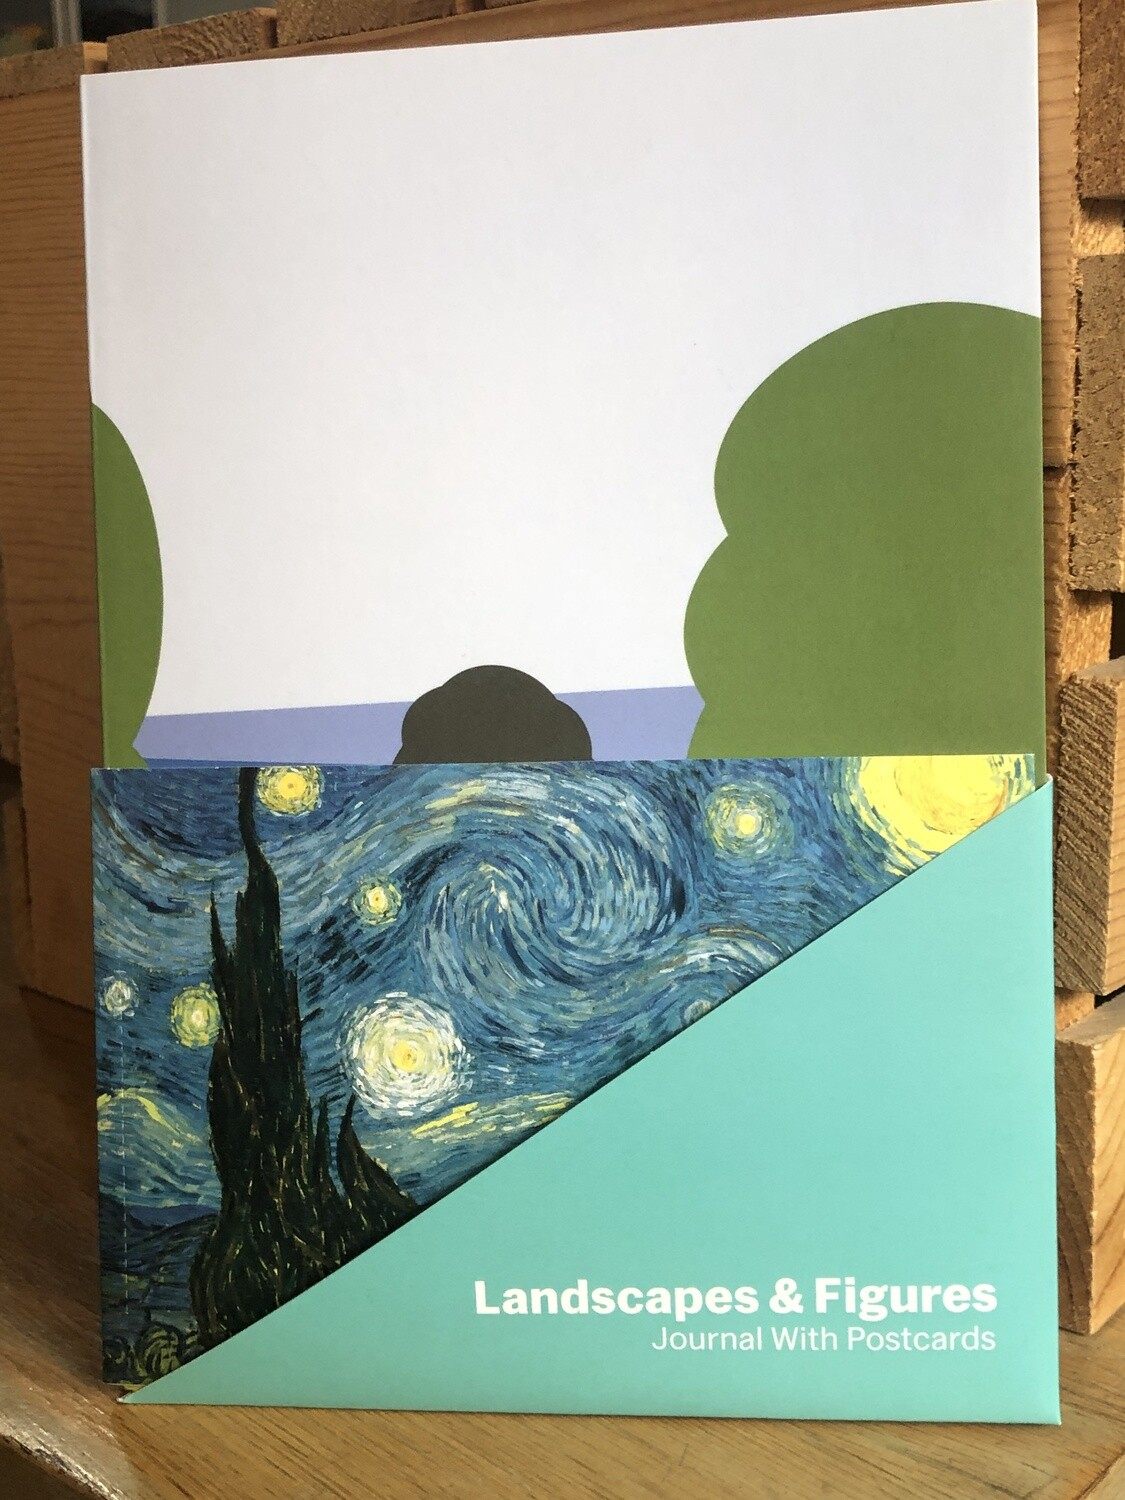 Landscapes and Figures Journal/Postcards